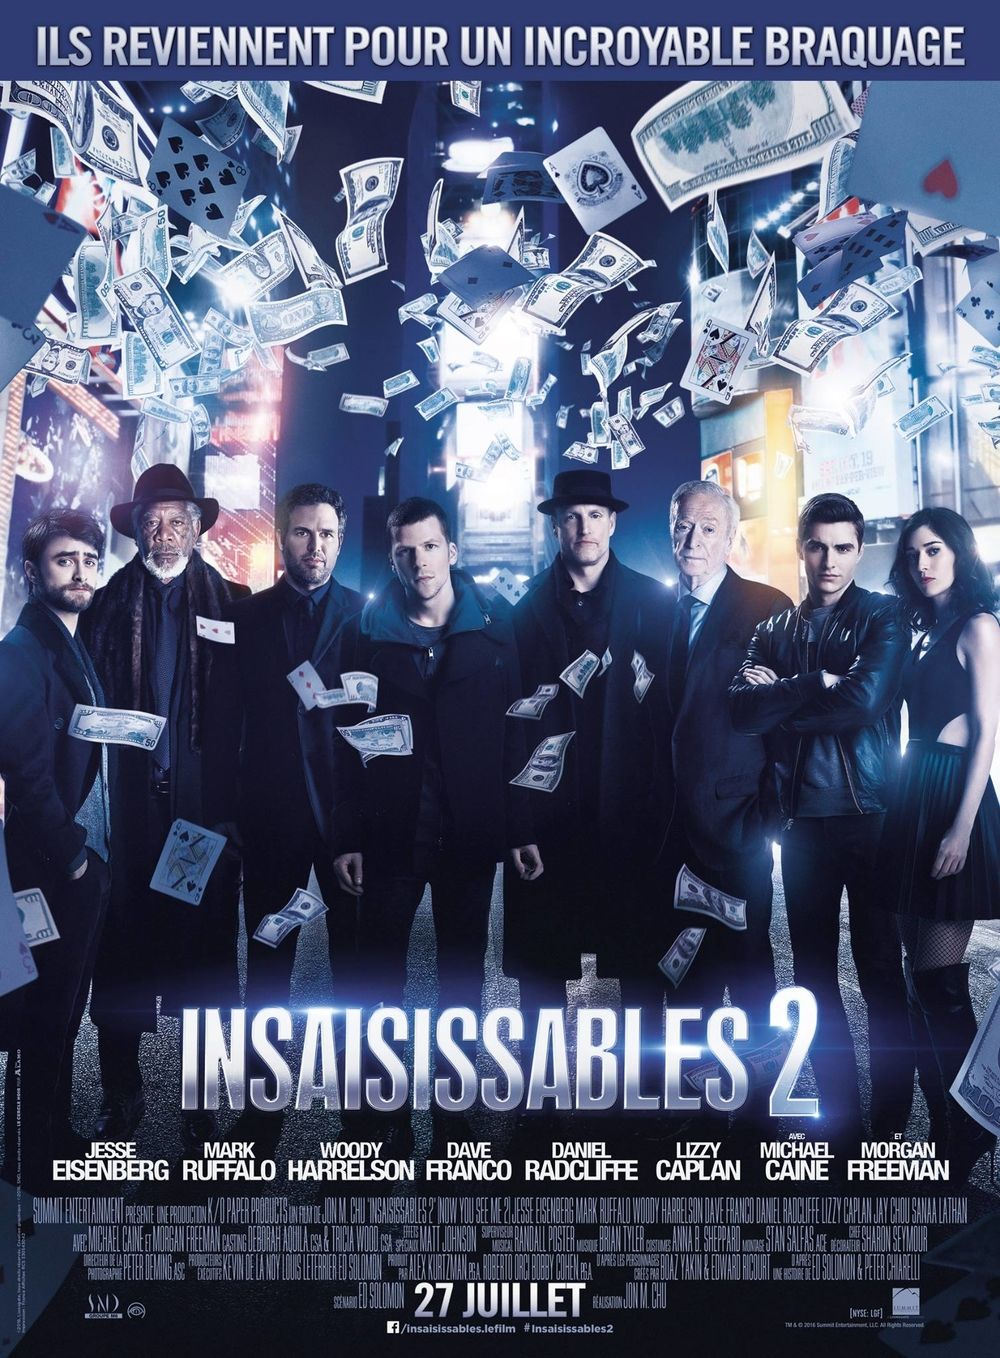 Insaisissable 2 (C) 7.5/10